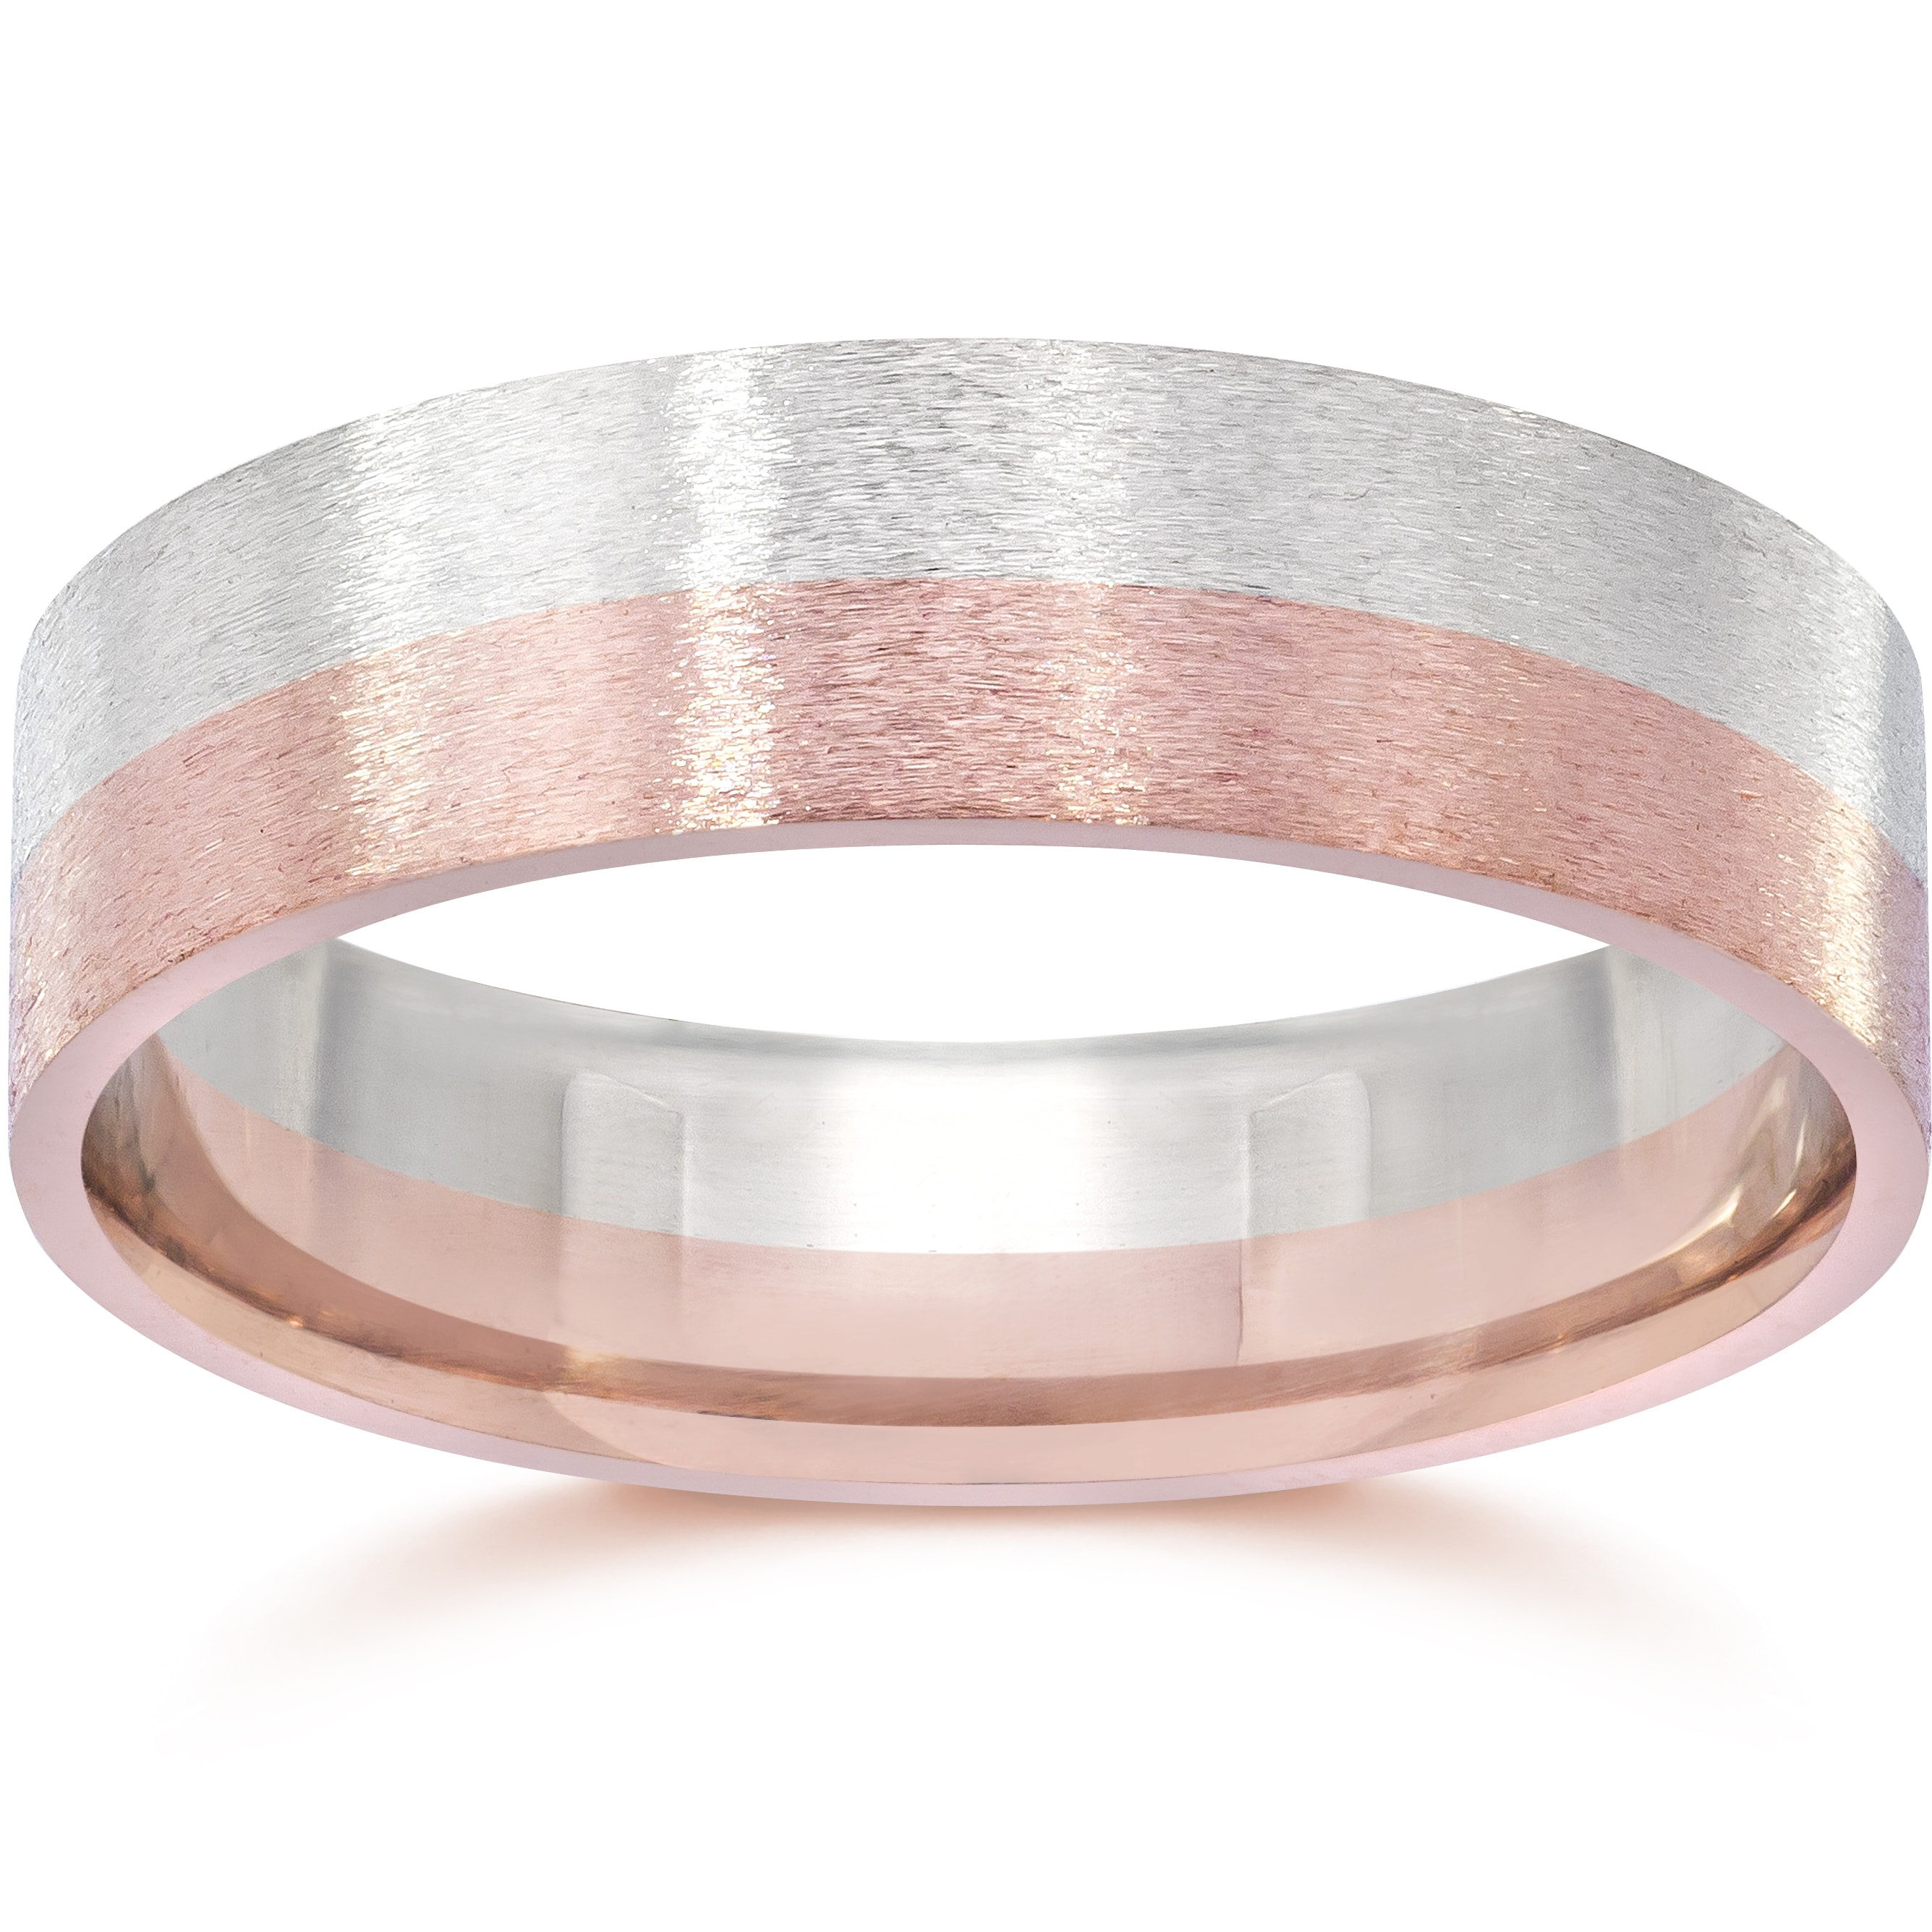 5-6 mm Gold Rings For Less | Overstock.com